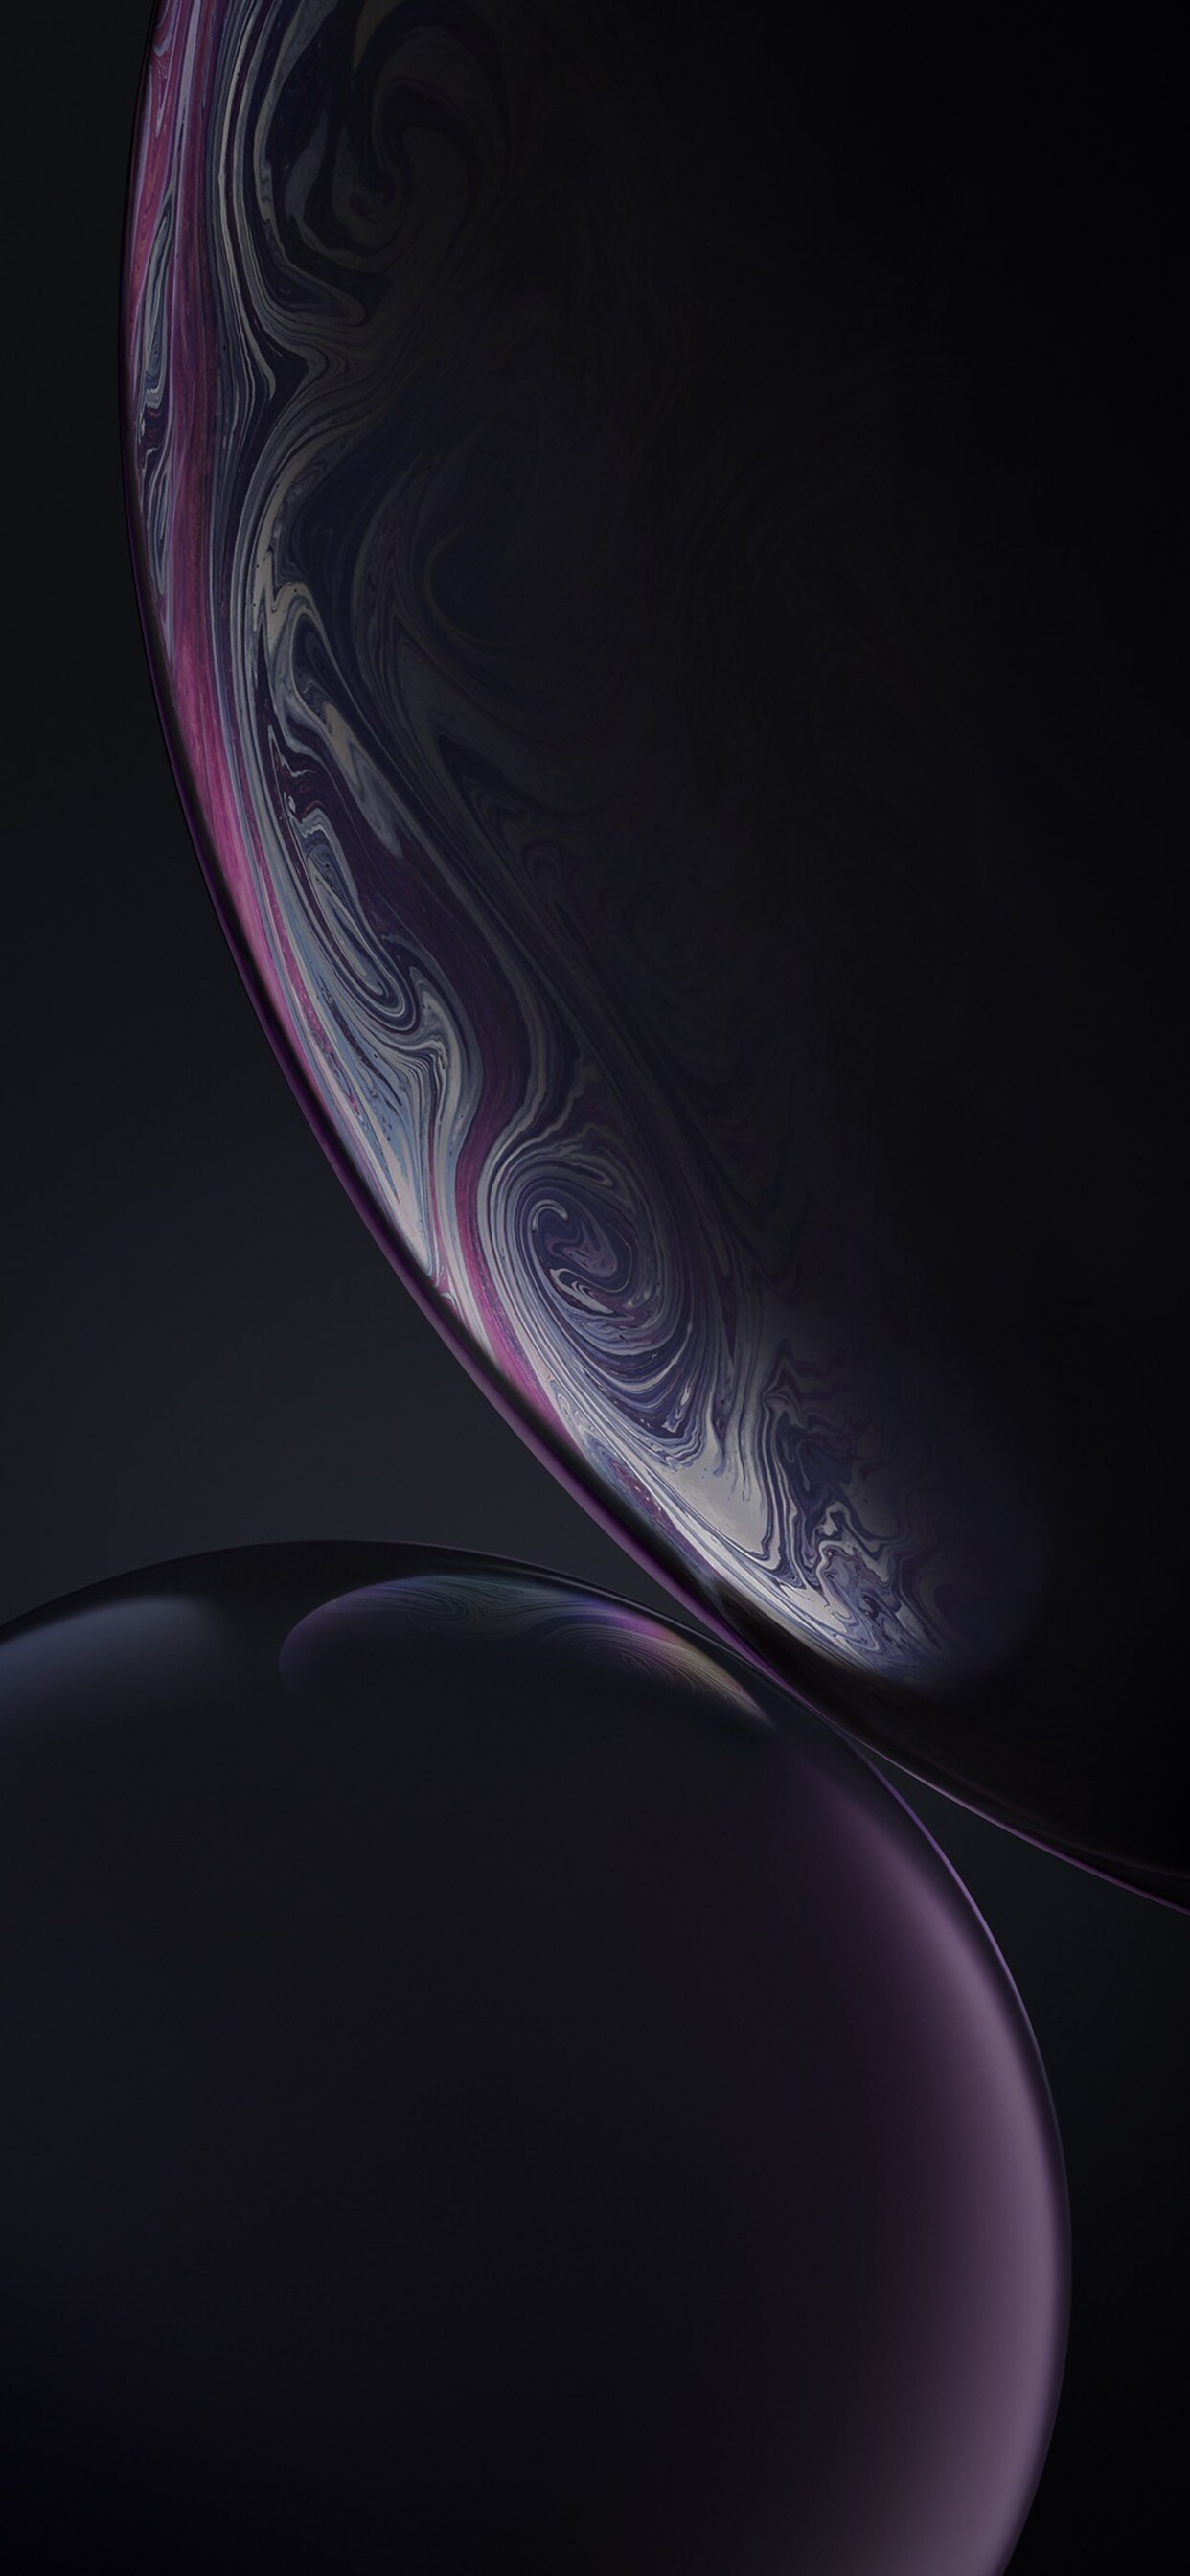 1242x2688 Ios 12 Iphone Xs Max Hd 4k Wallpapers Images Backgrounds